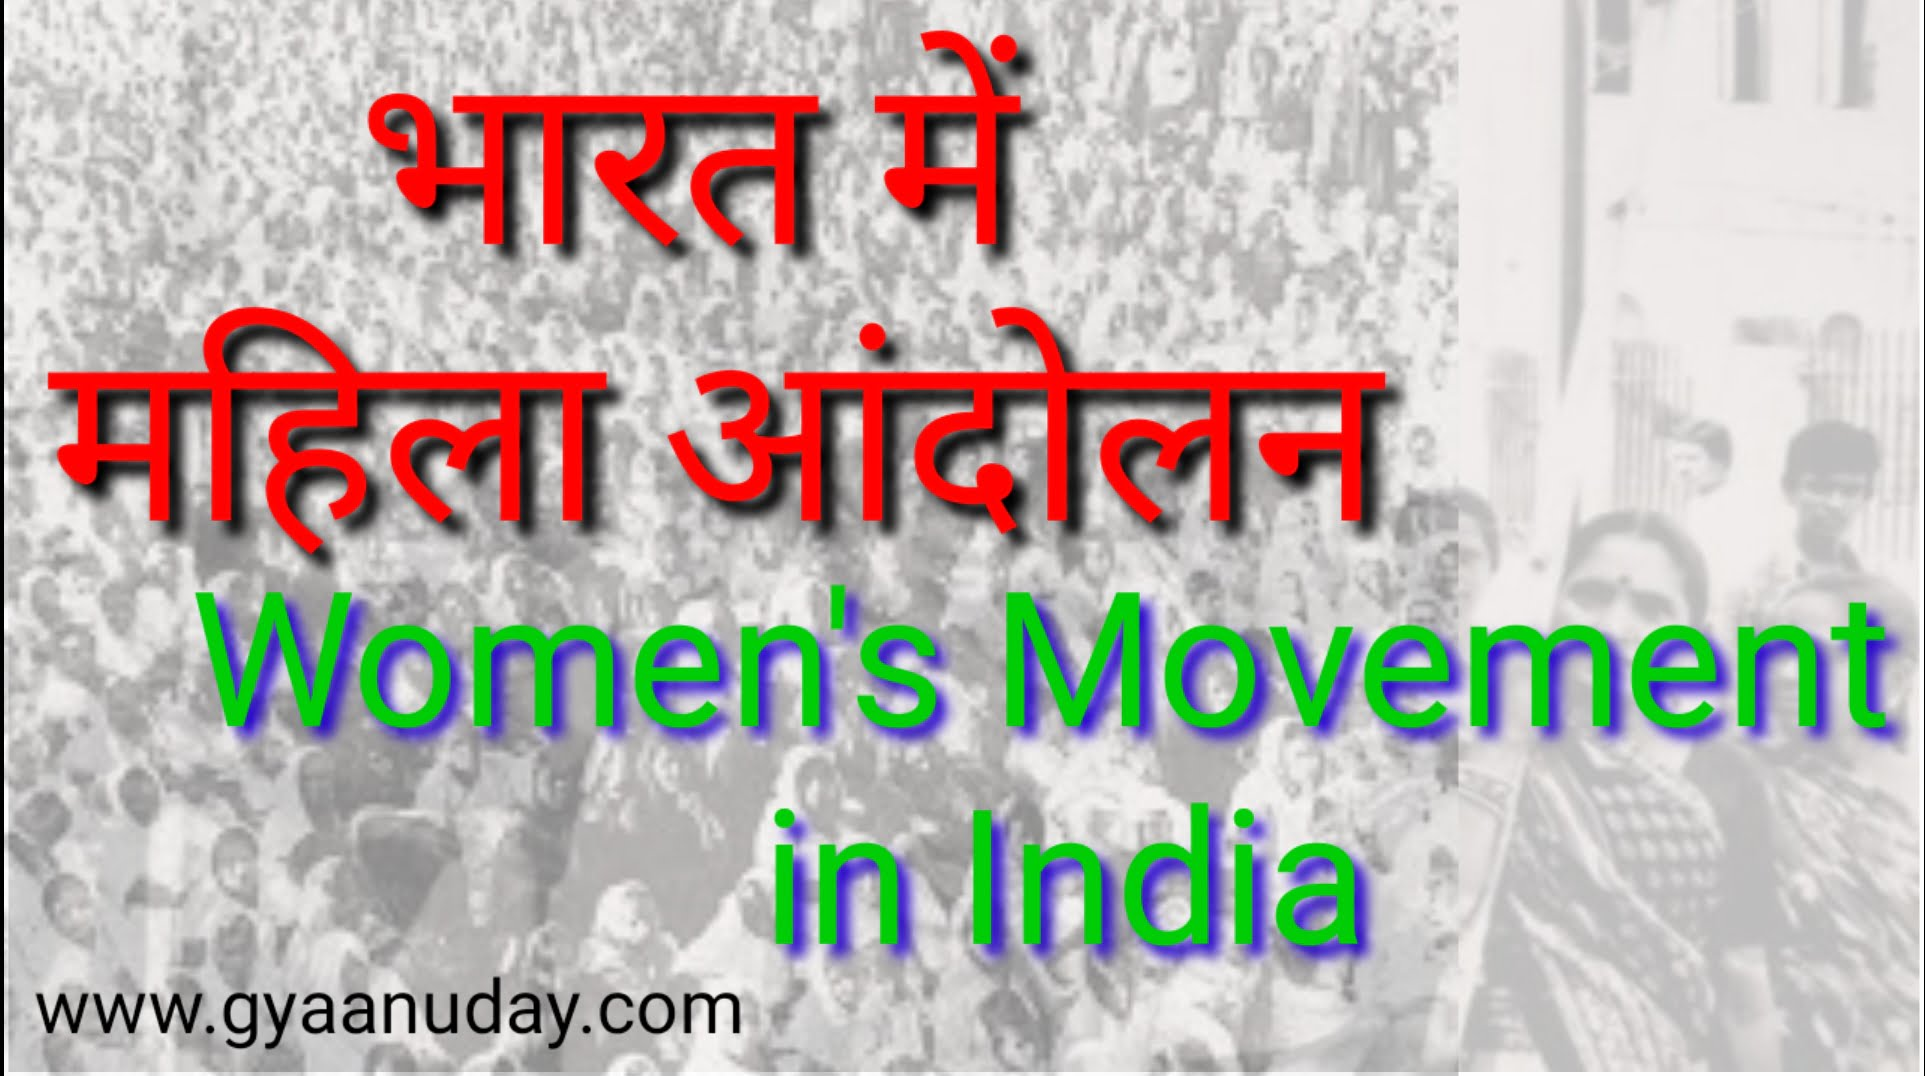 Women's movement in India